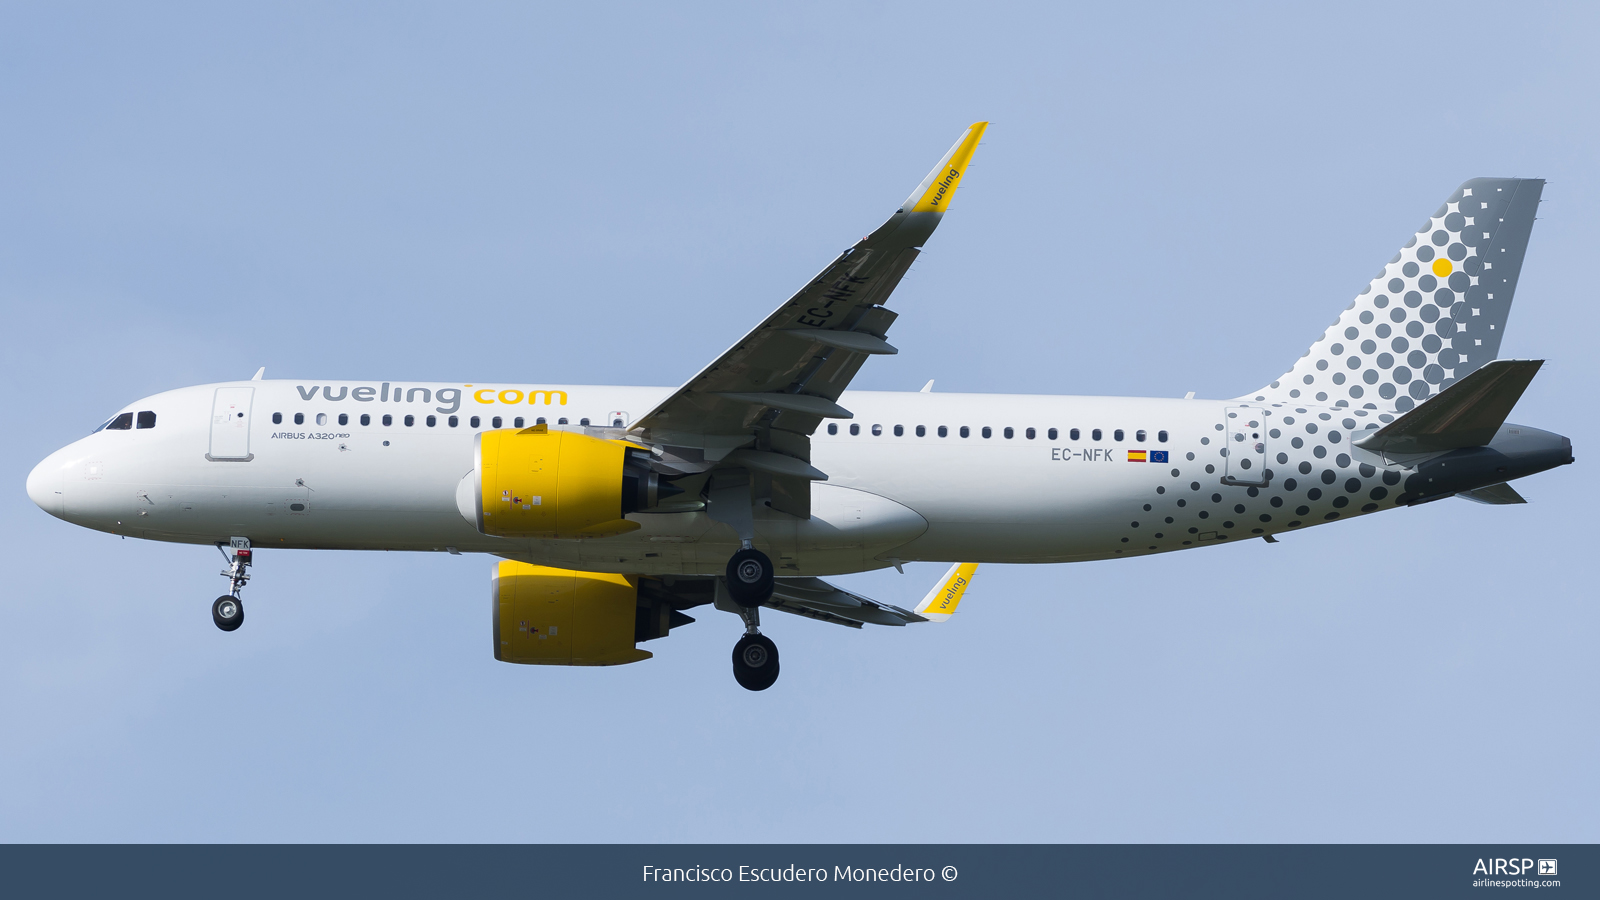 Vueling  Airbus A320neo  EC-NFK